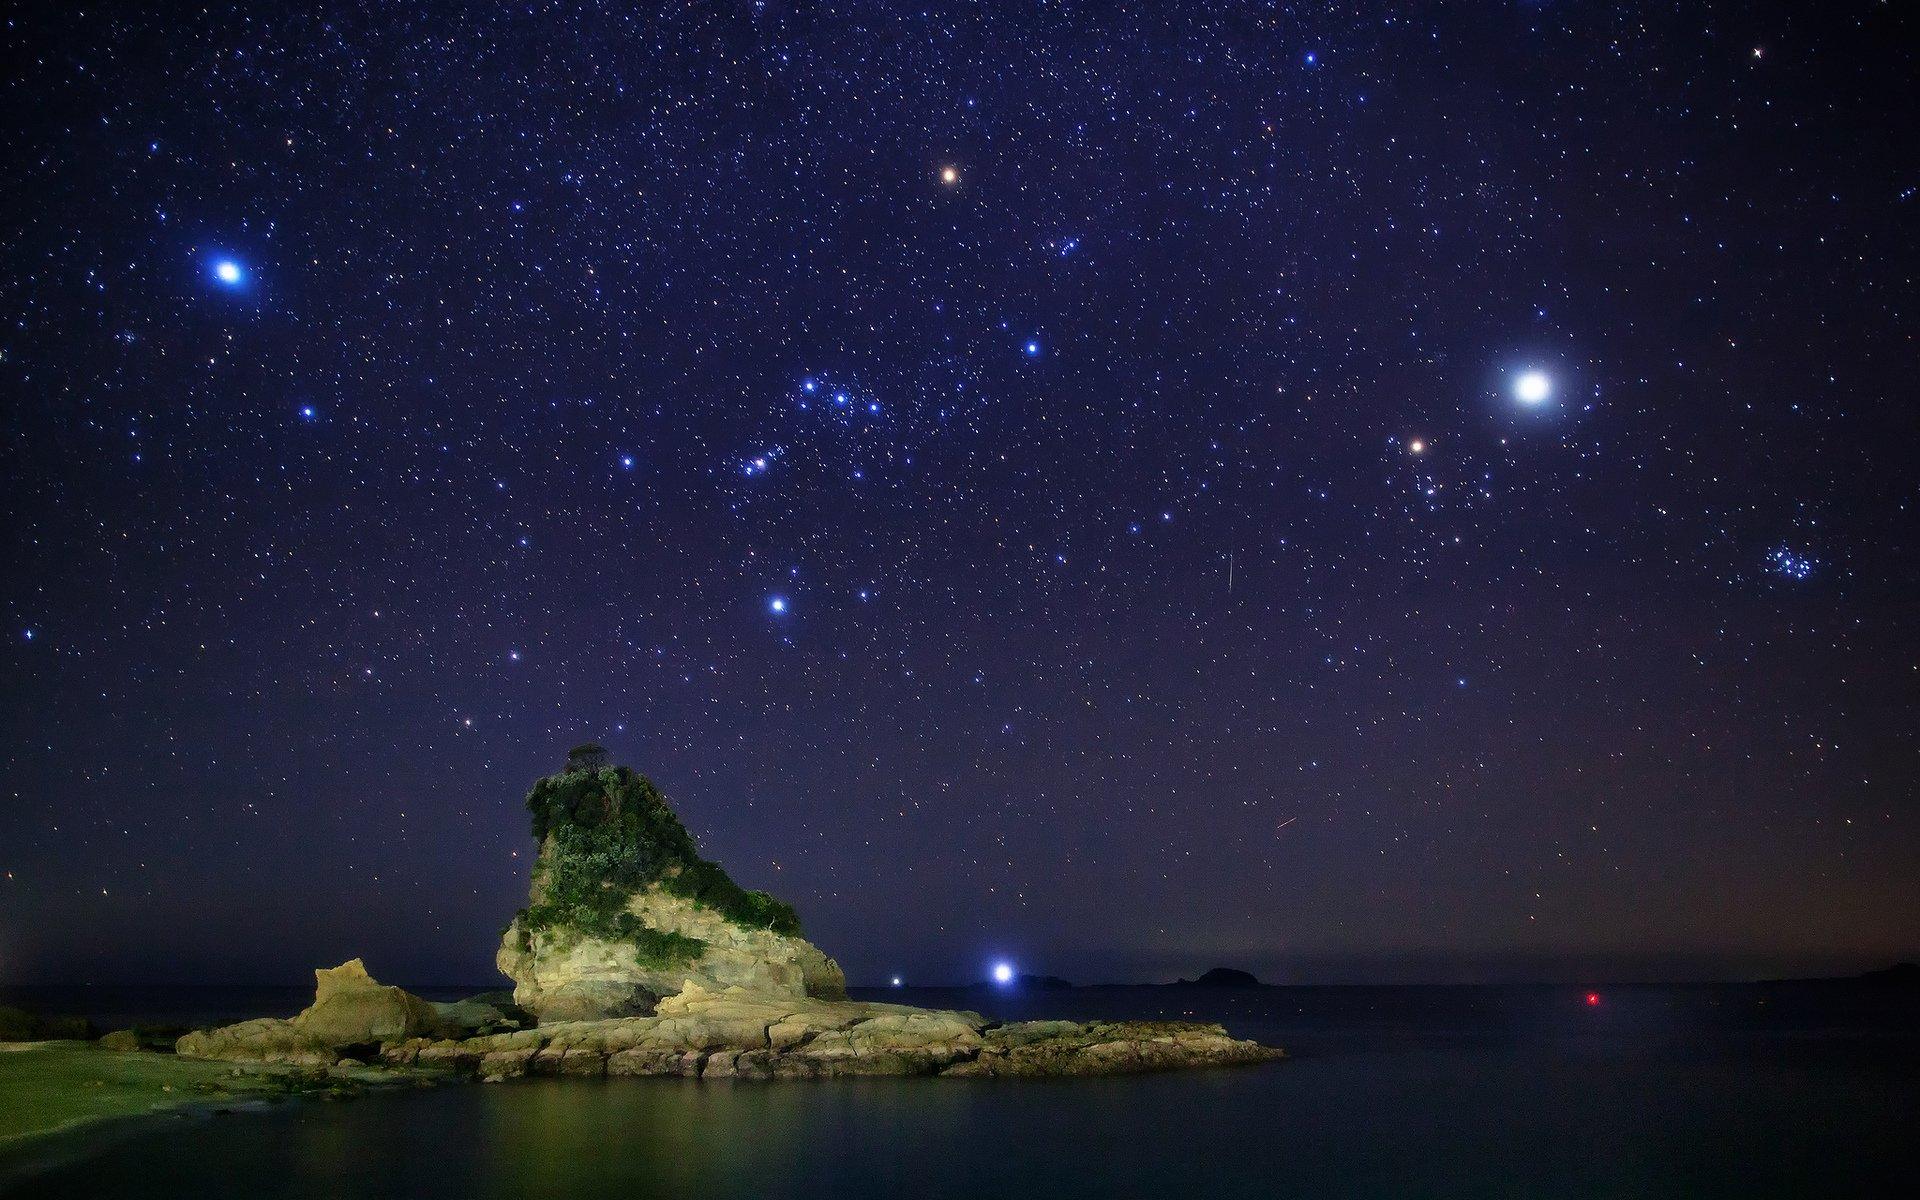 2 Constellation HD Wallpapers